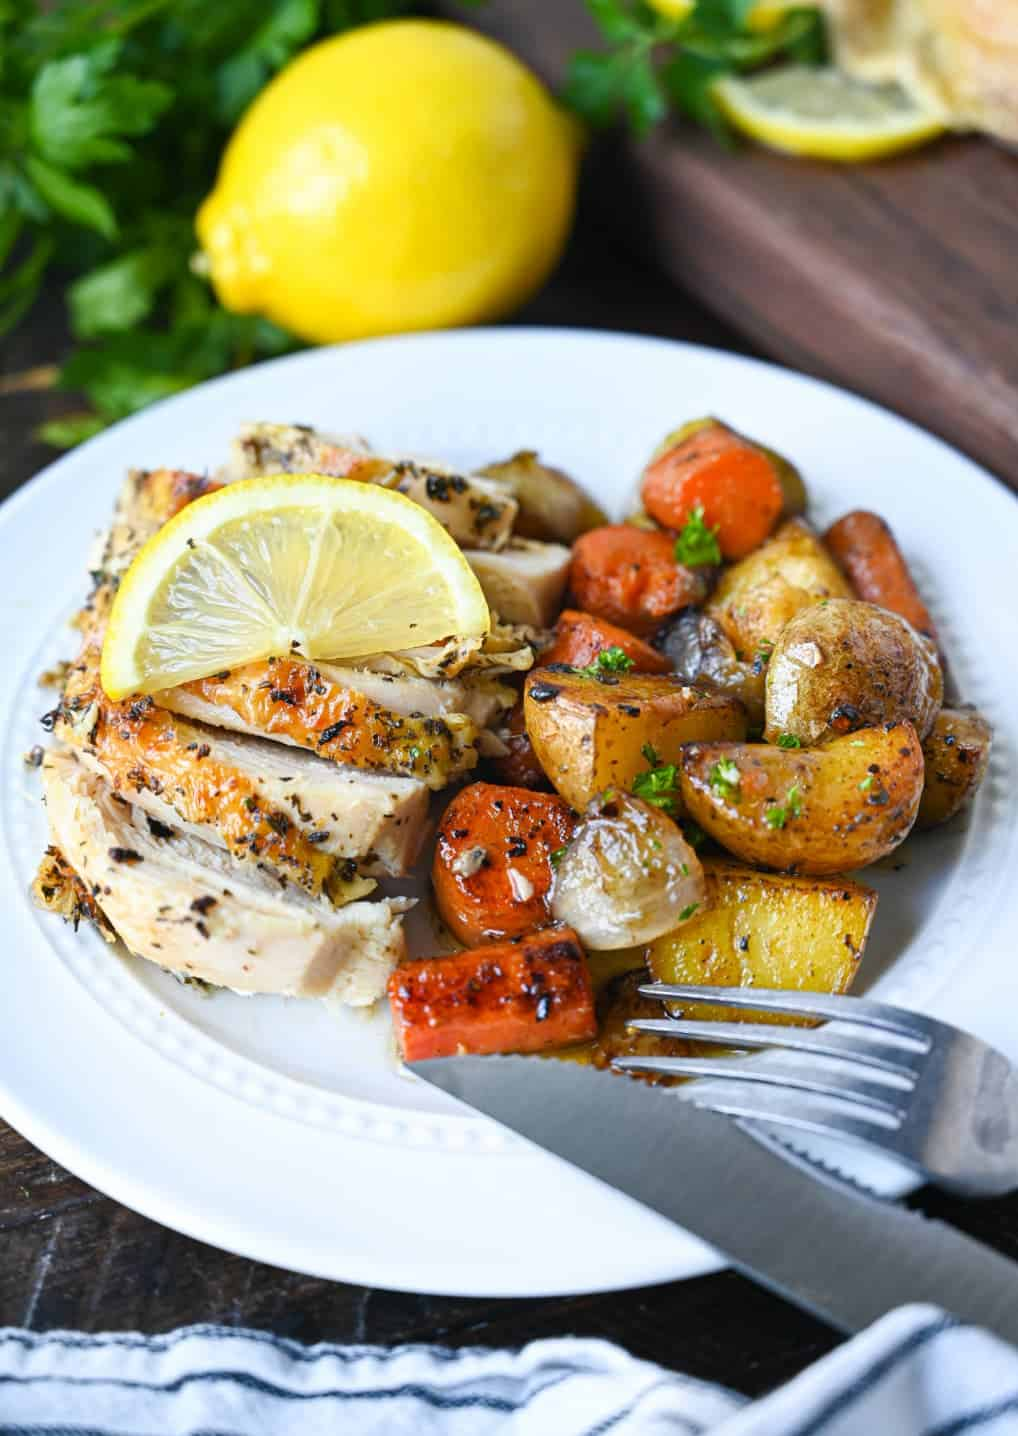 Sliced lemon galic chicken breast with a side of potatoes and carrots.